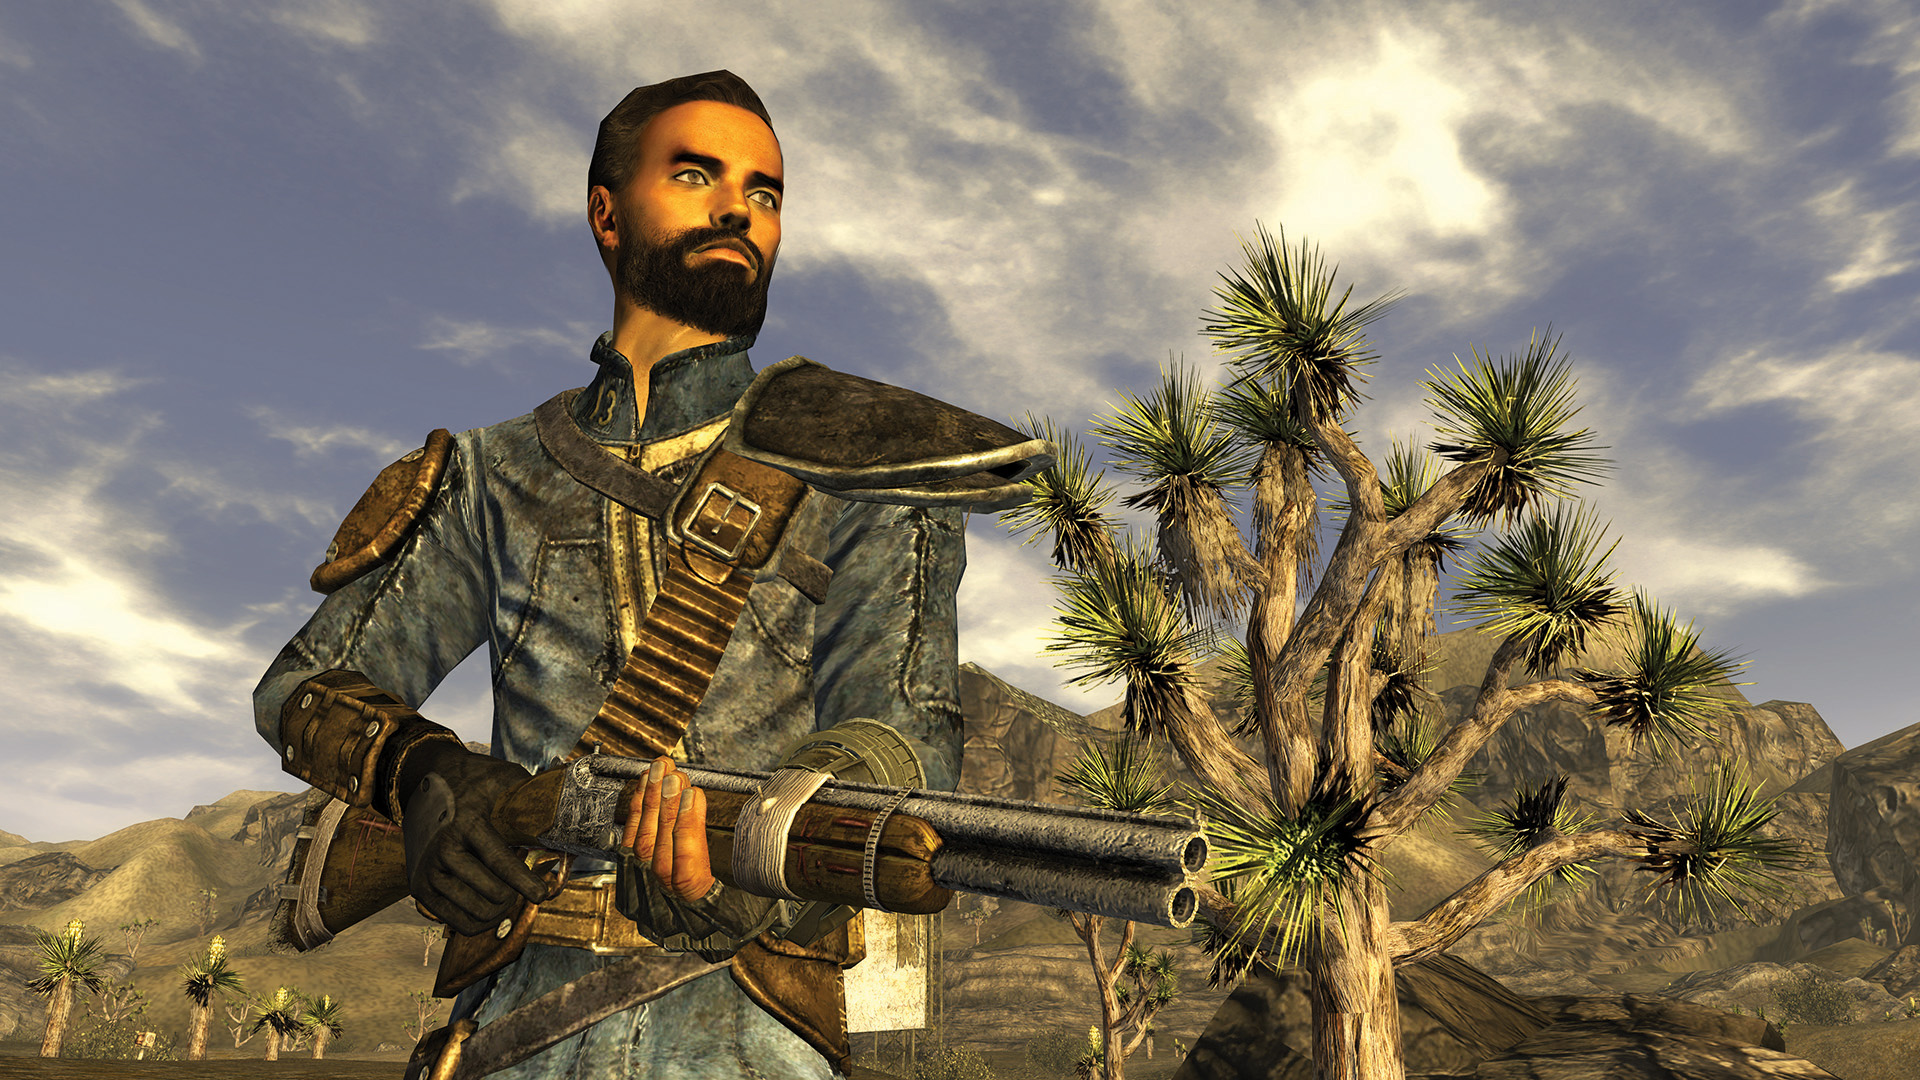 Mod that merges Fallout 3 and New Vegas gets long-awaited 'total